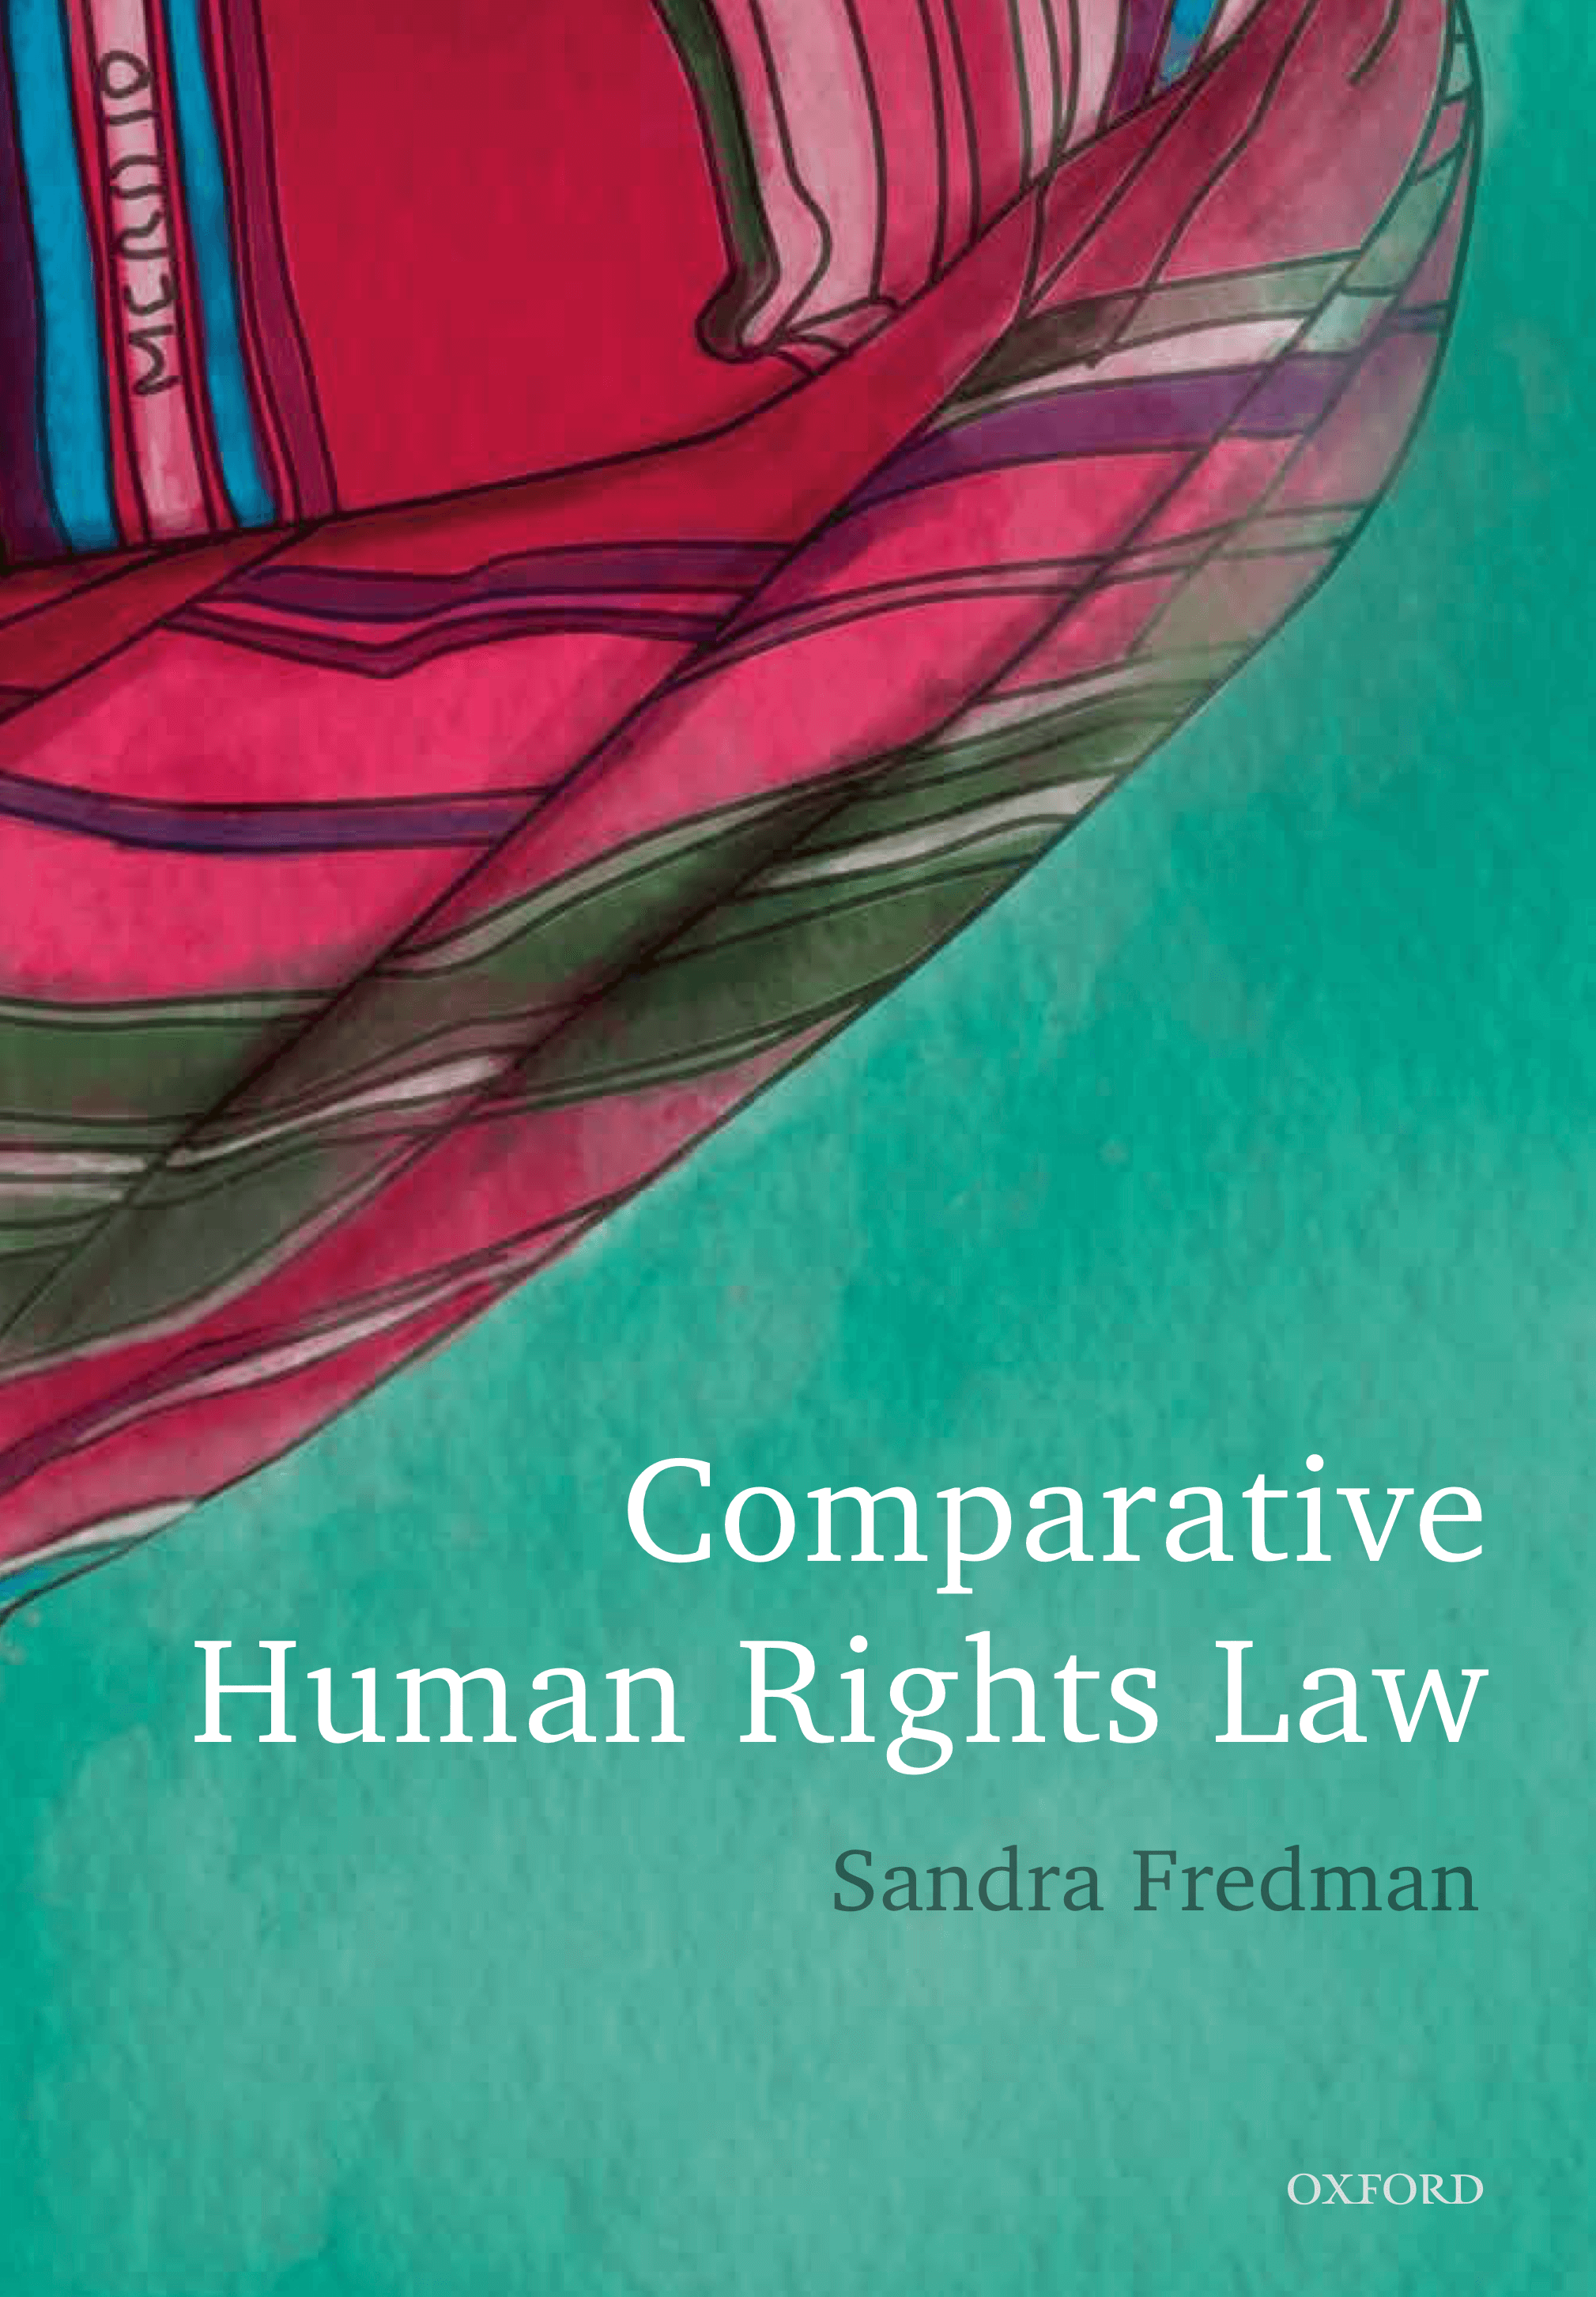 Prof Sandra Fredman Writes About New Book on OUP Blog